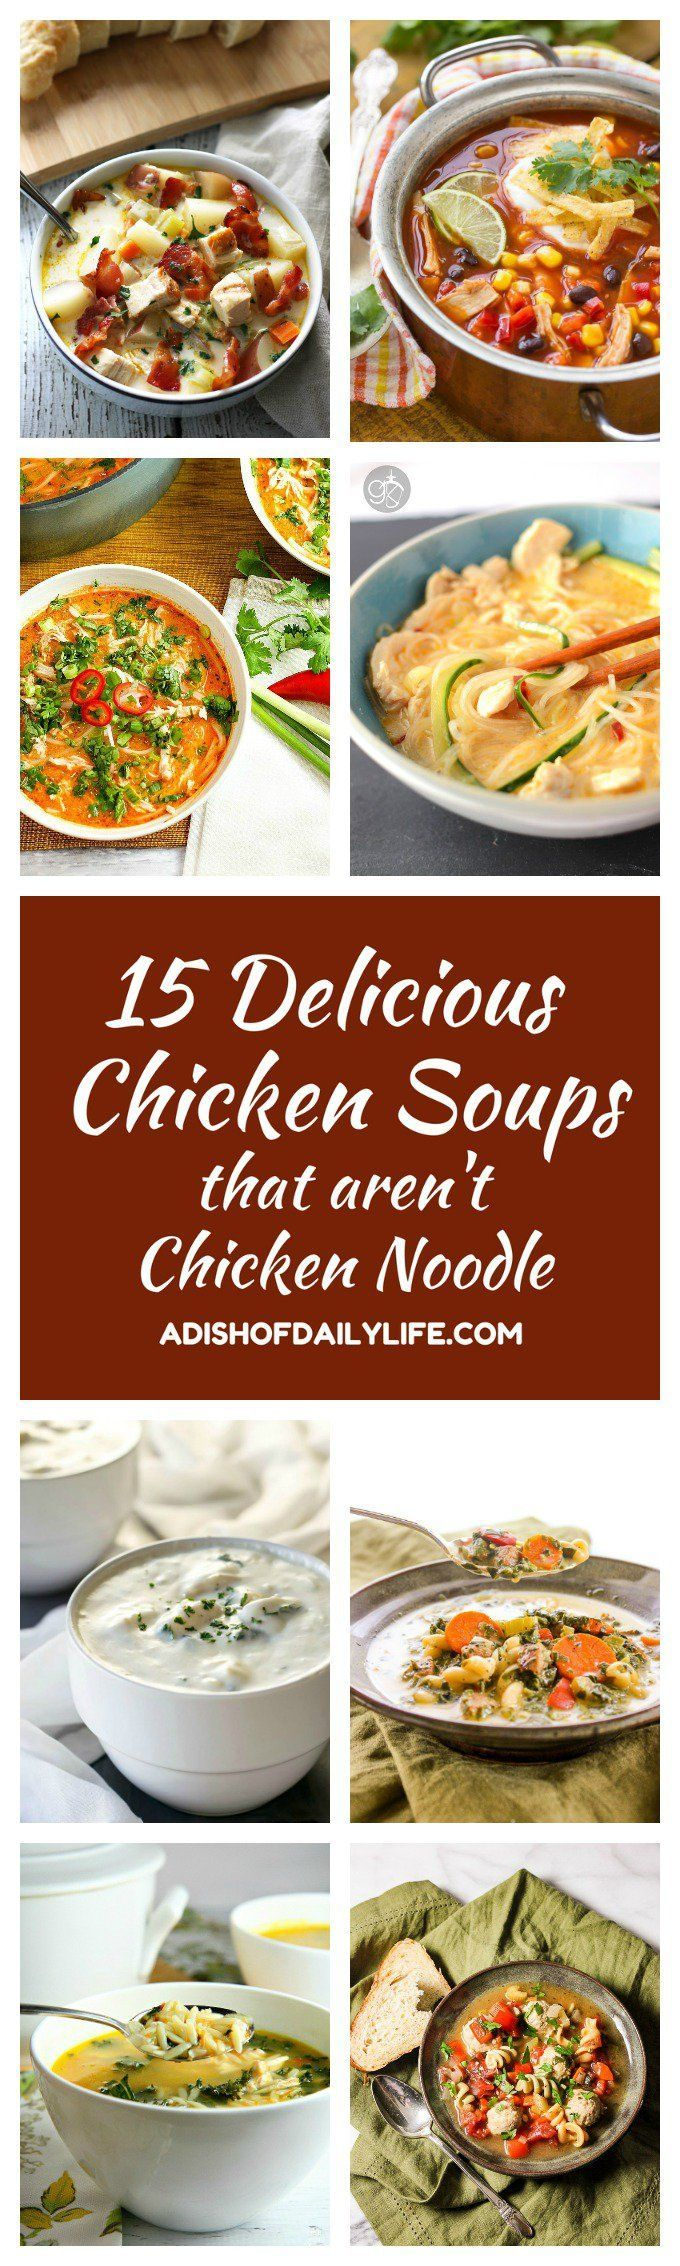 If you're looking for a change from the traditional chicken noodle soup, here are 15 hearty Chicken Soup recipes that your family will love! http://www.adishofdailylife.com/2016/12/15-delicious-chicken-soup-recipes-that-arent-chicken-noodle/